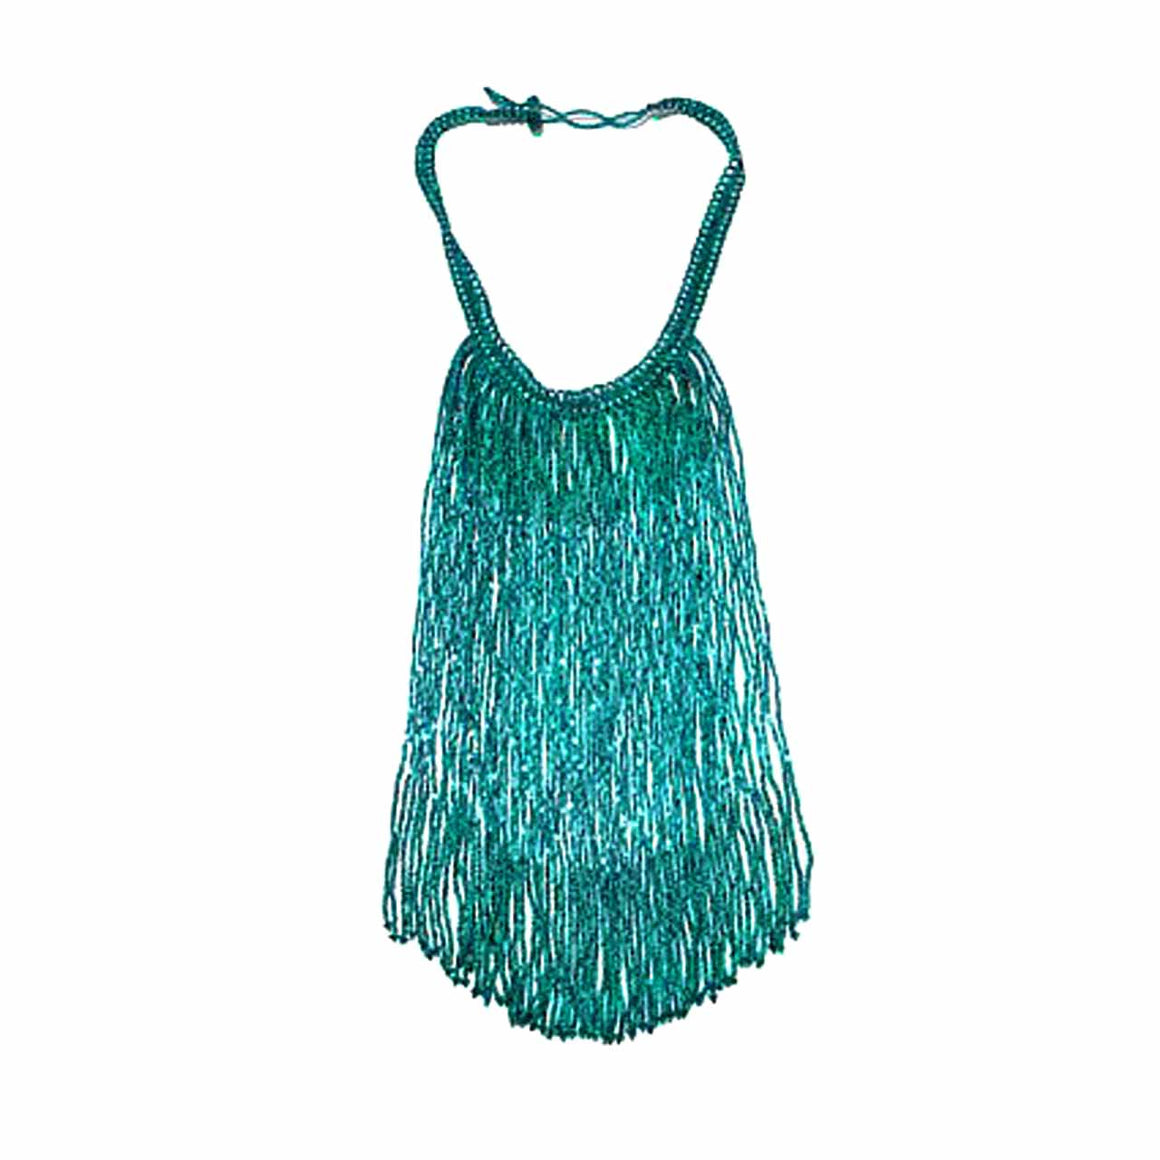 Teal Colour Potay Fringe Necklace